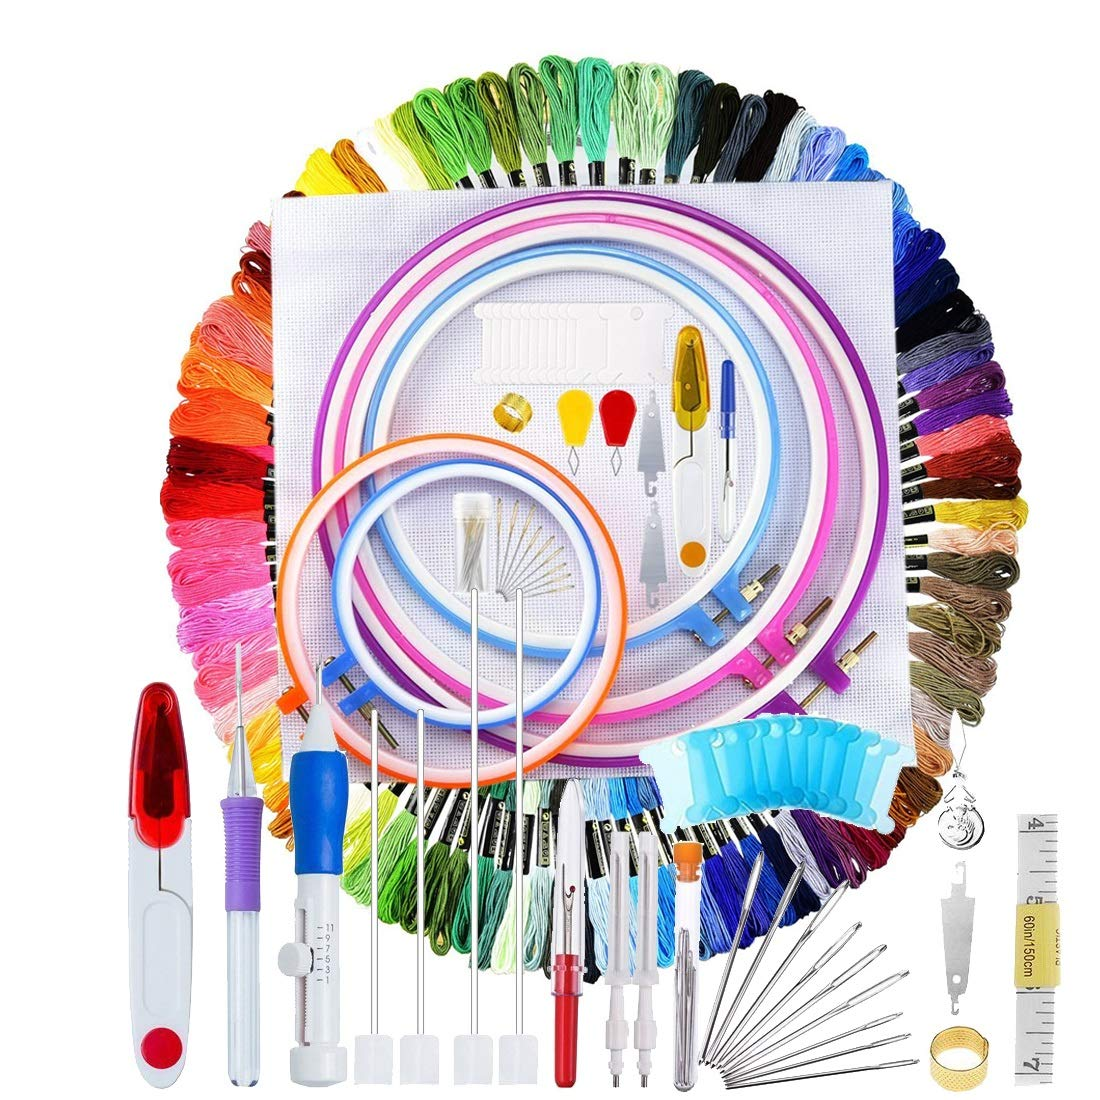 140 Pieces Embroidery Cross Stitching Punch Needle Kit, Full Range of Embroidery Starter Kit Including Magic Embroidery Pen Punch Needle, 5 Embroidery Hoops, 2 Cross Stitch Cloth, 100 Threads EVINIS